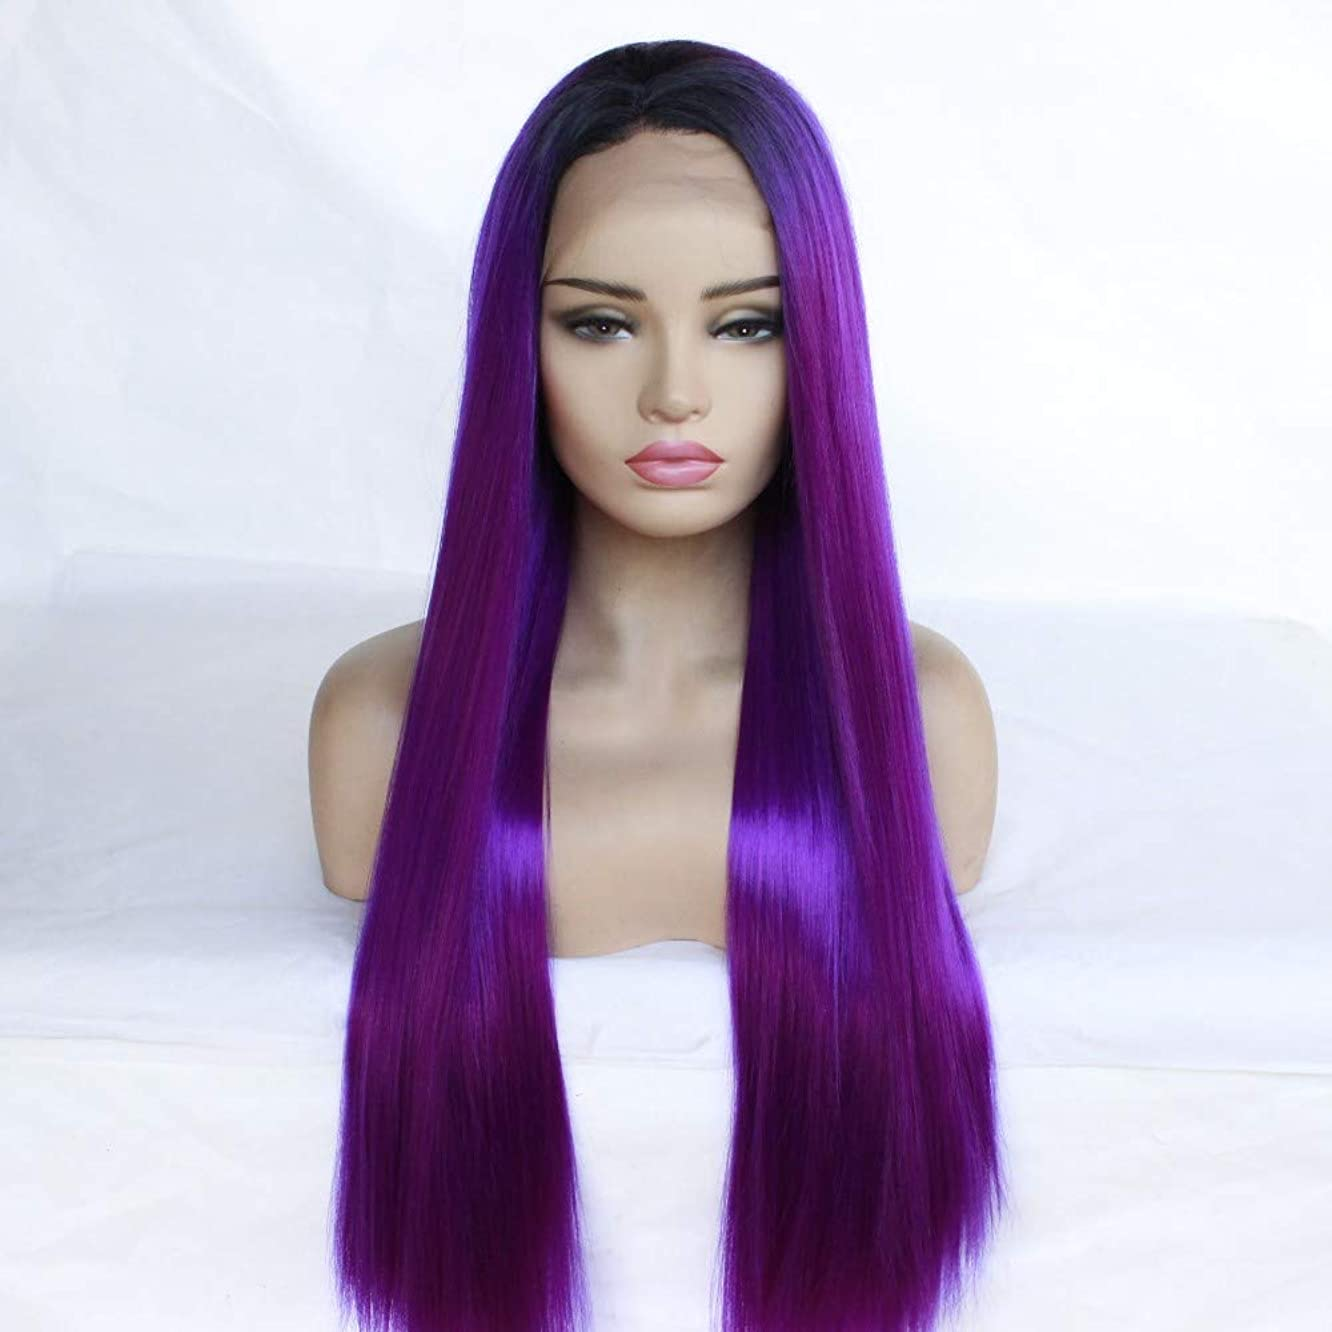 BAOFU Wig Wig Female T Purple Gradient Front Lace Chemical Fiber Long Straight Hair Wig Head Cover 55Cm 300G